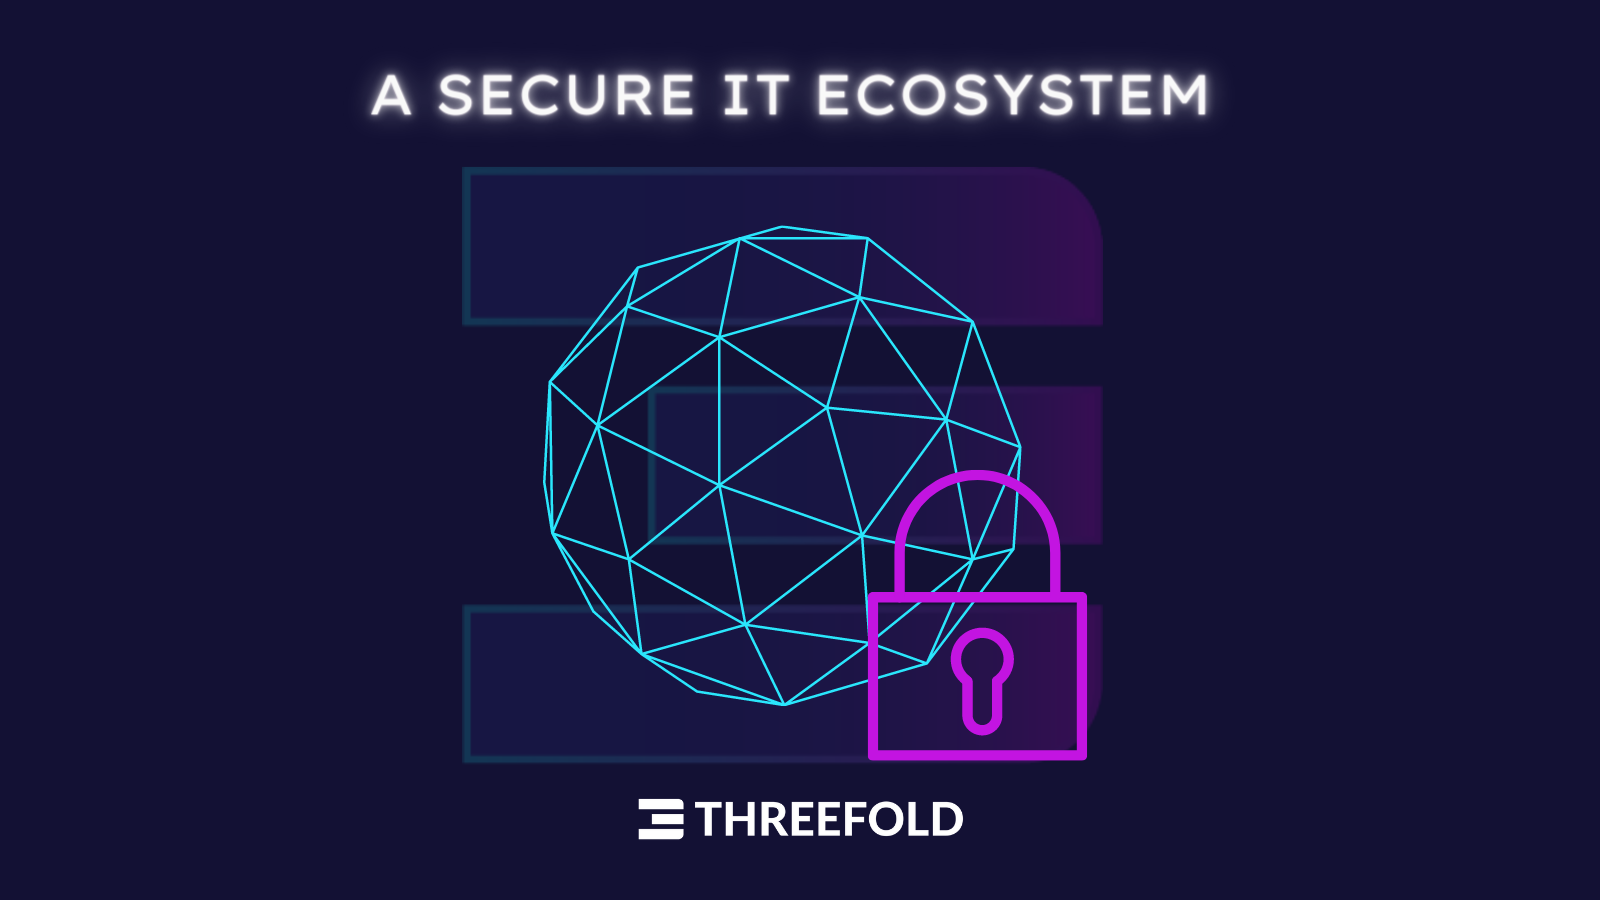 Secure Ecosystem Visual